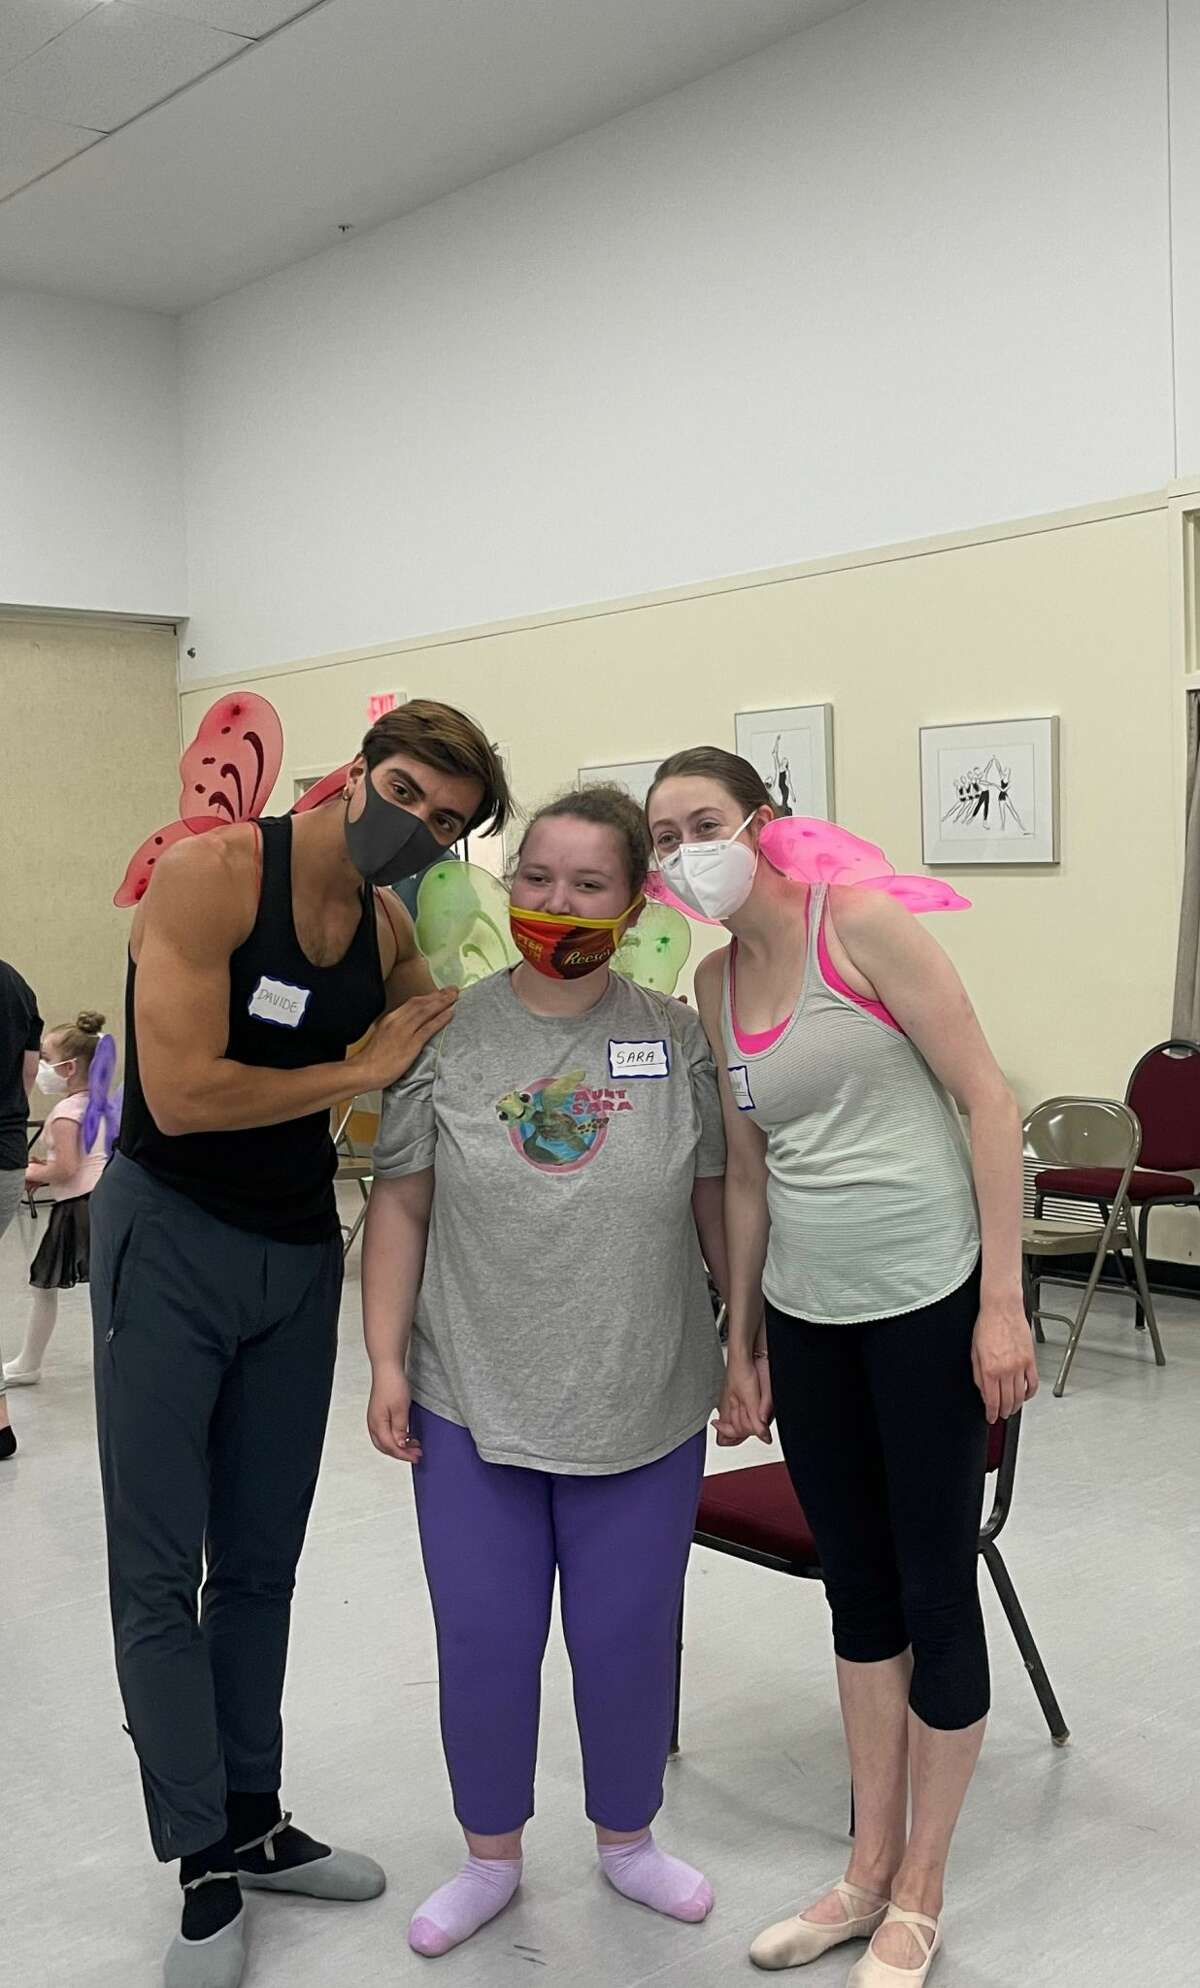 Sara Kachel with her instructors, New York City Ballet dancers Meaghan Dutton-O'Hara and Davide Riccardo at a workshop on Saturday, July 17, 2021, at the National Museum of Dance School of the Arts in Saratoga Springs, N.Y.